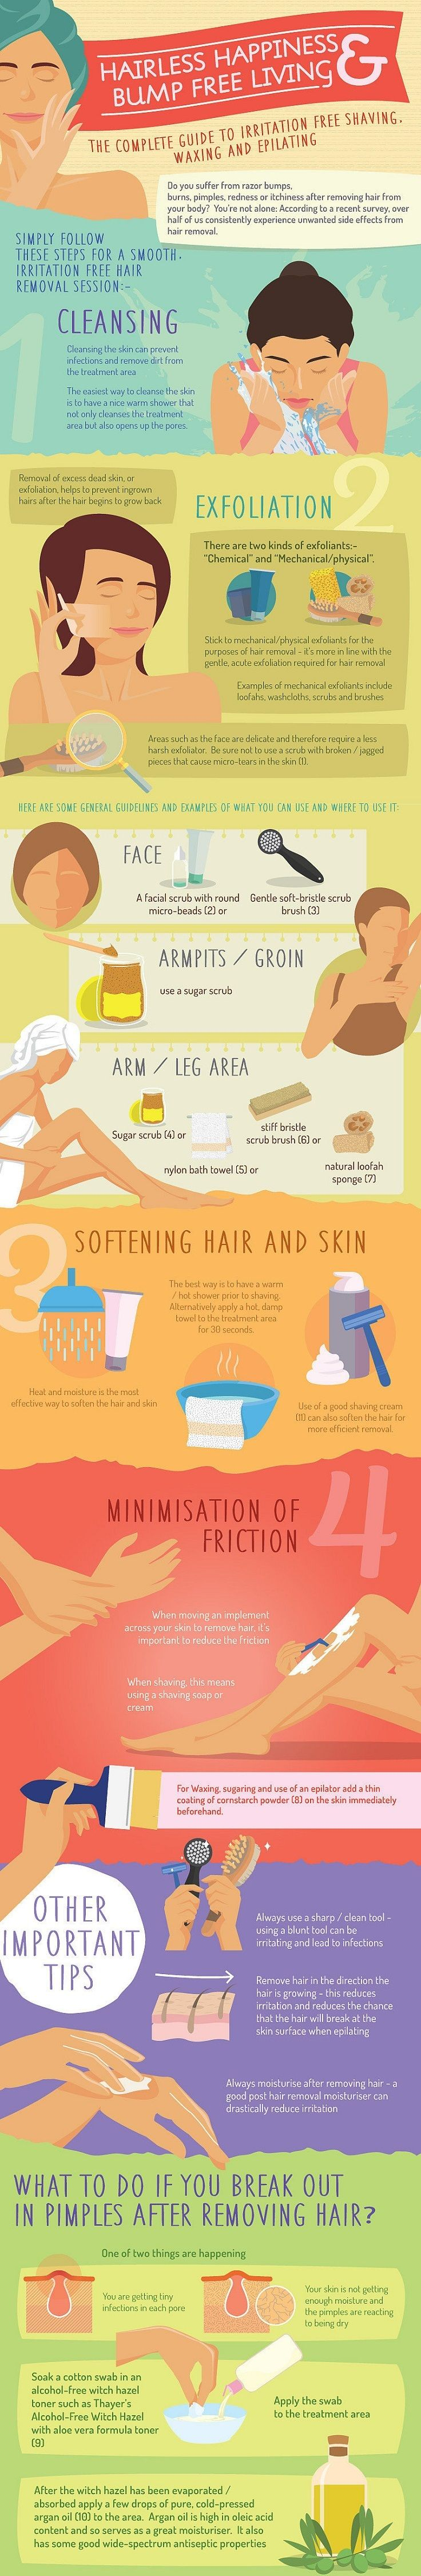 5-Minute Hair-Removal Tips That Will Guarantee a Bump-Free Beach Bod - 10 Tips, Tricks and DIYs for Gorgeous Looking Summer Skin